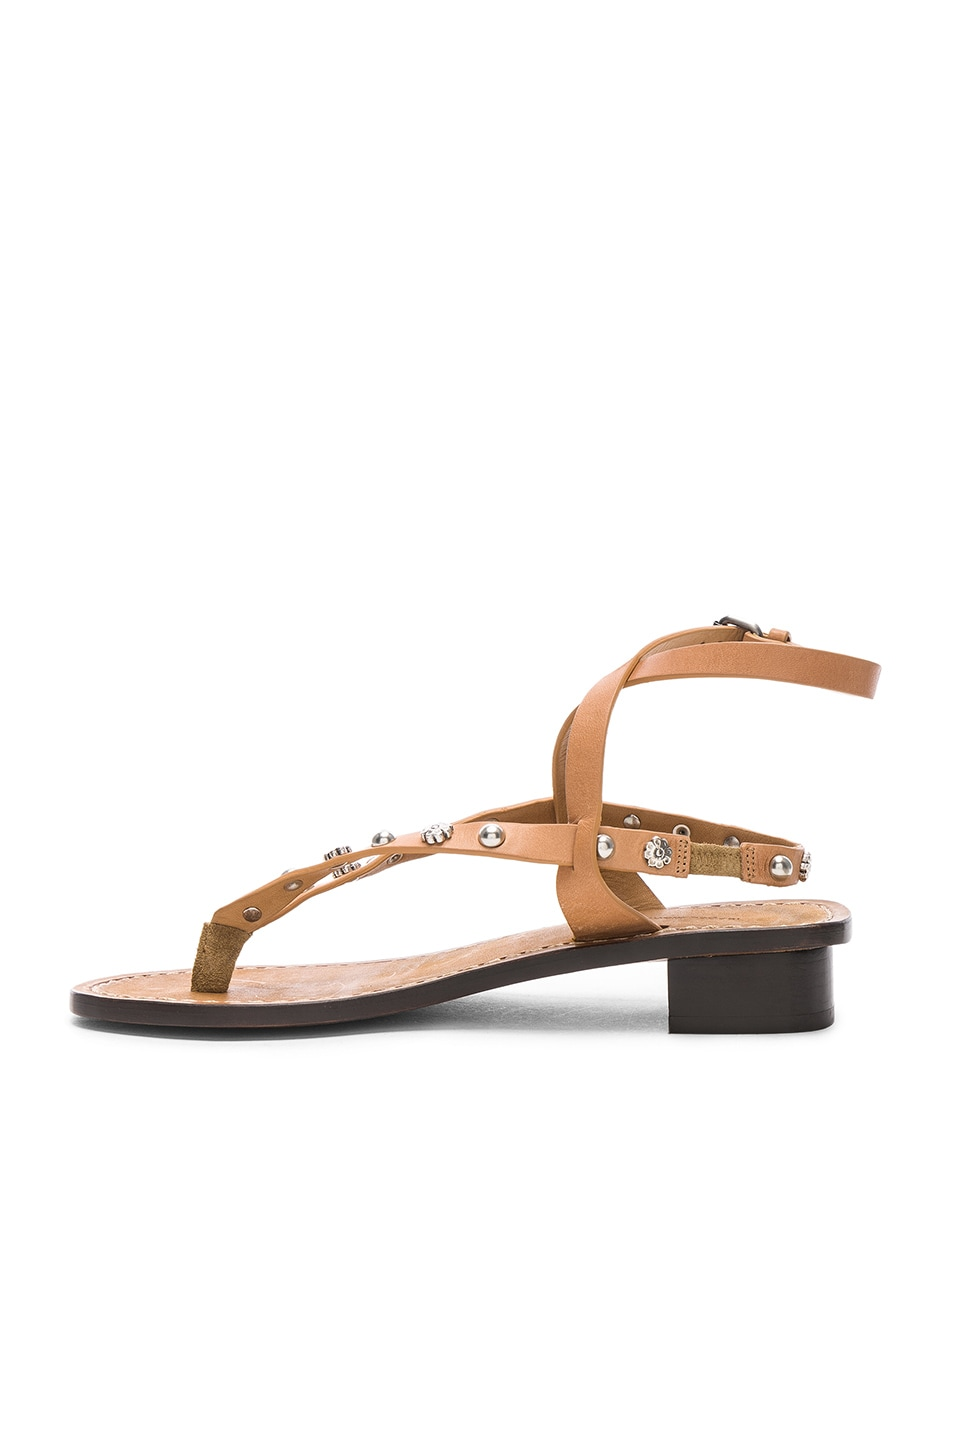 outlet Isabel Marant Jings Sandal Brown